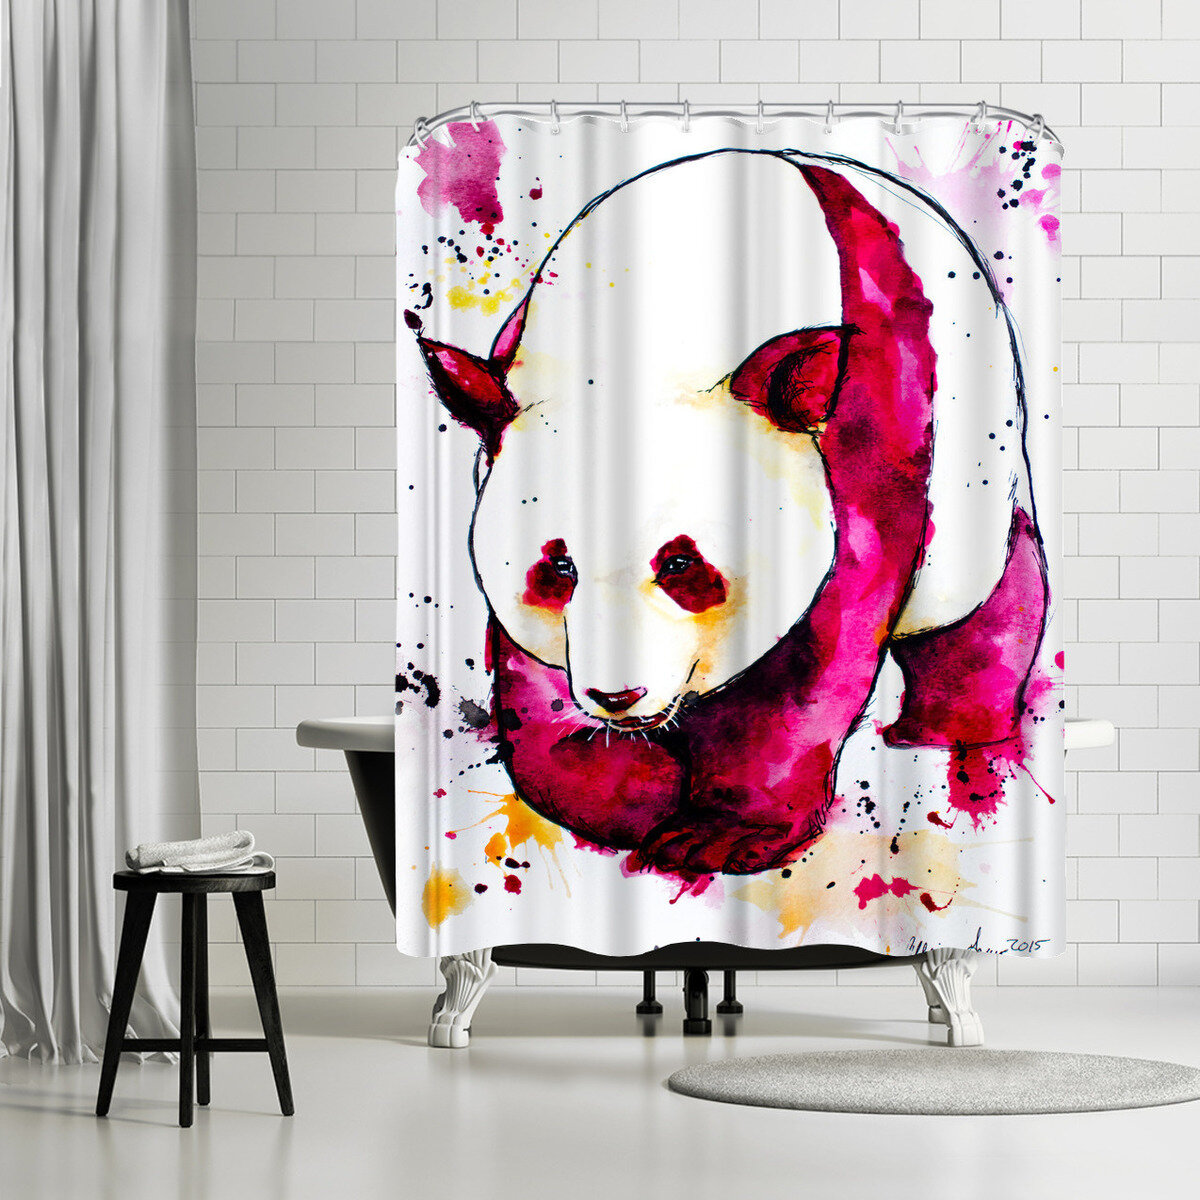 East Urban Home Allison Gray Panda Bear Shower Curtain